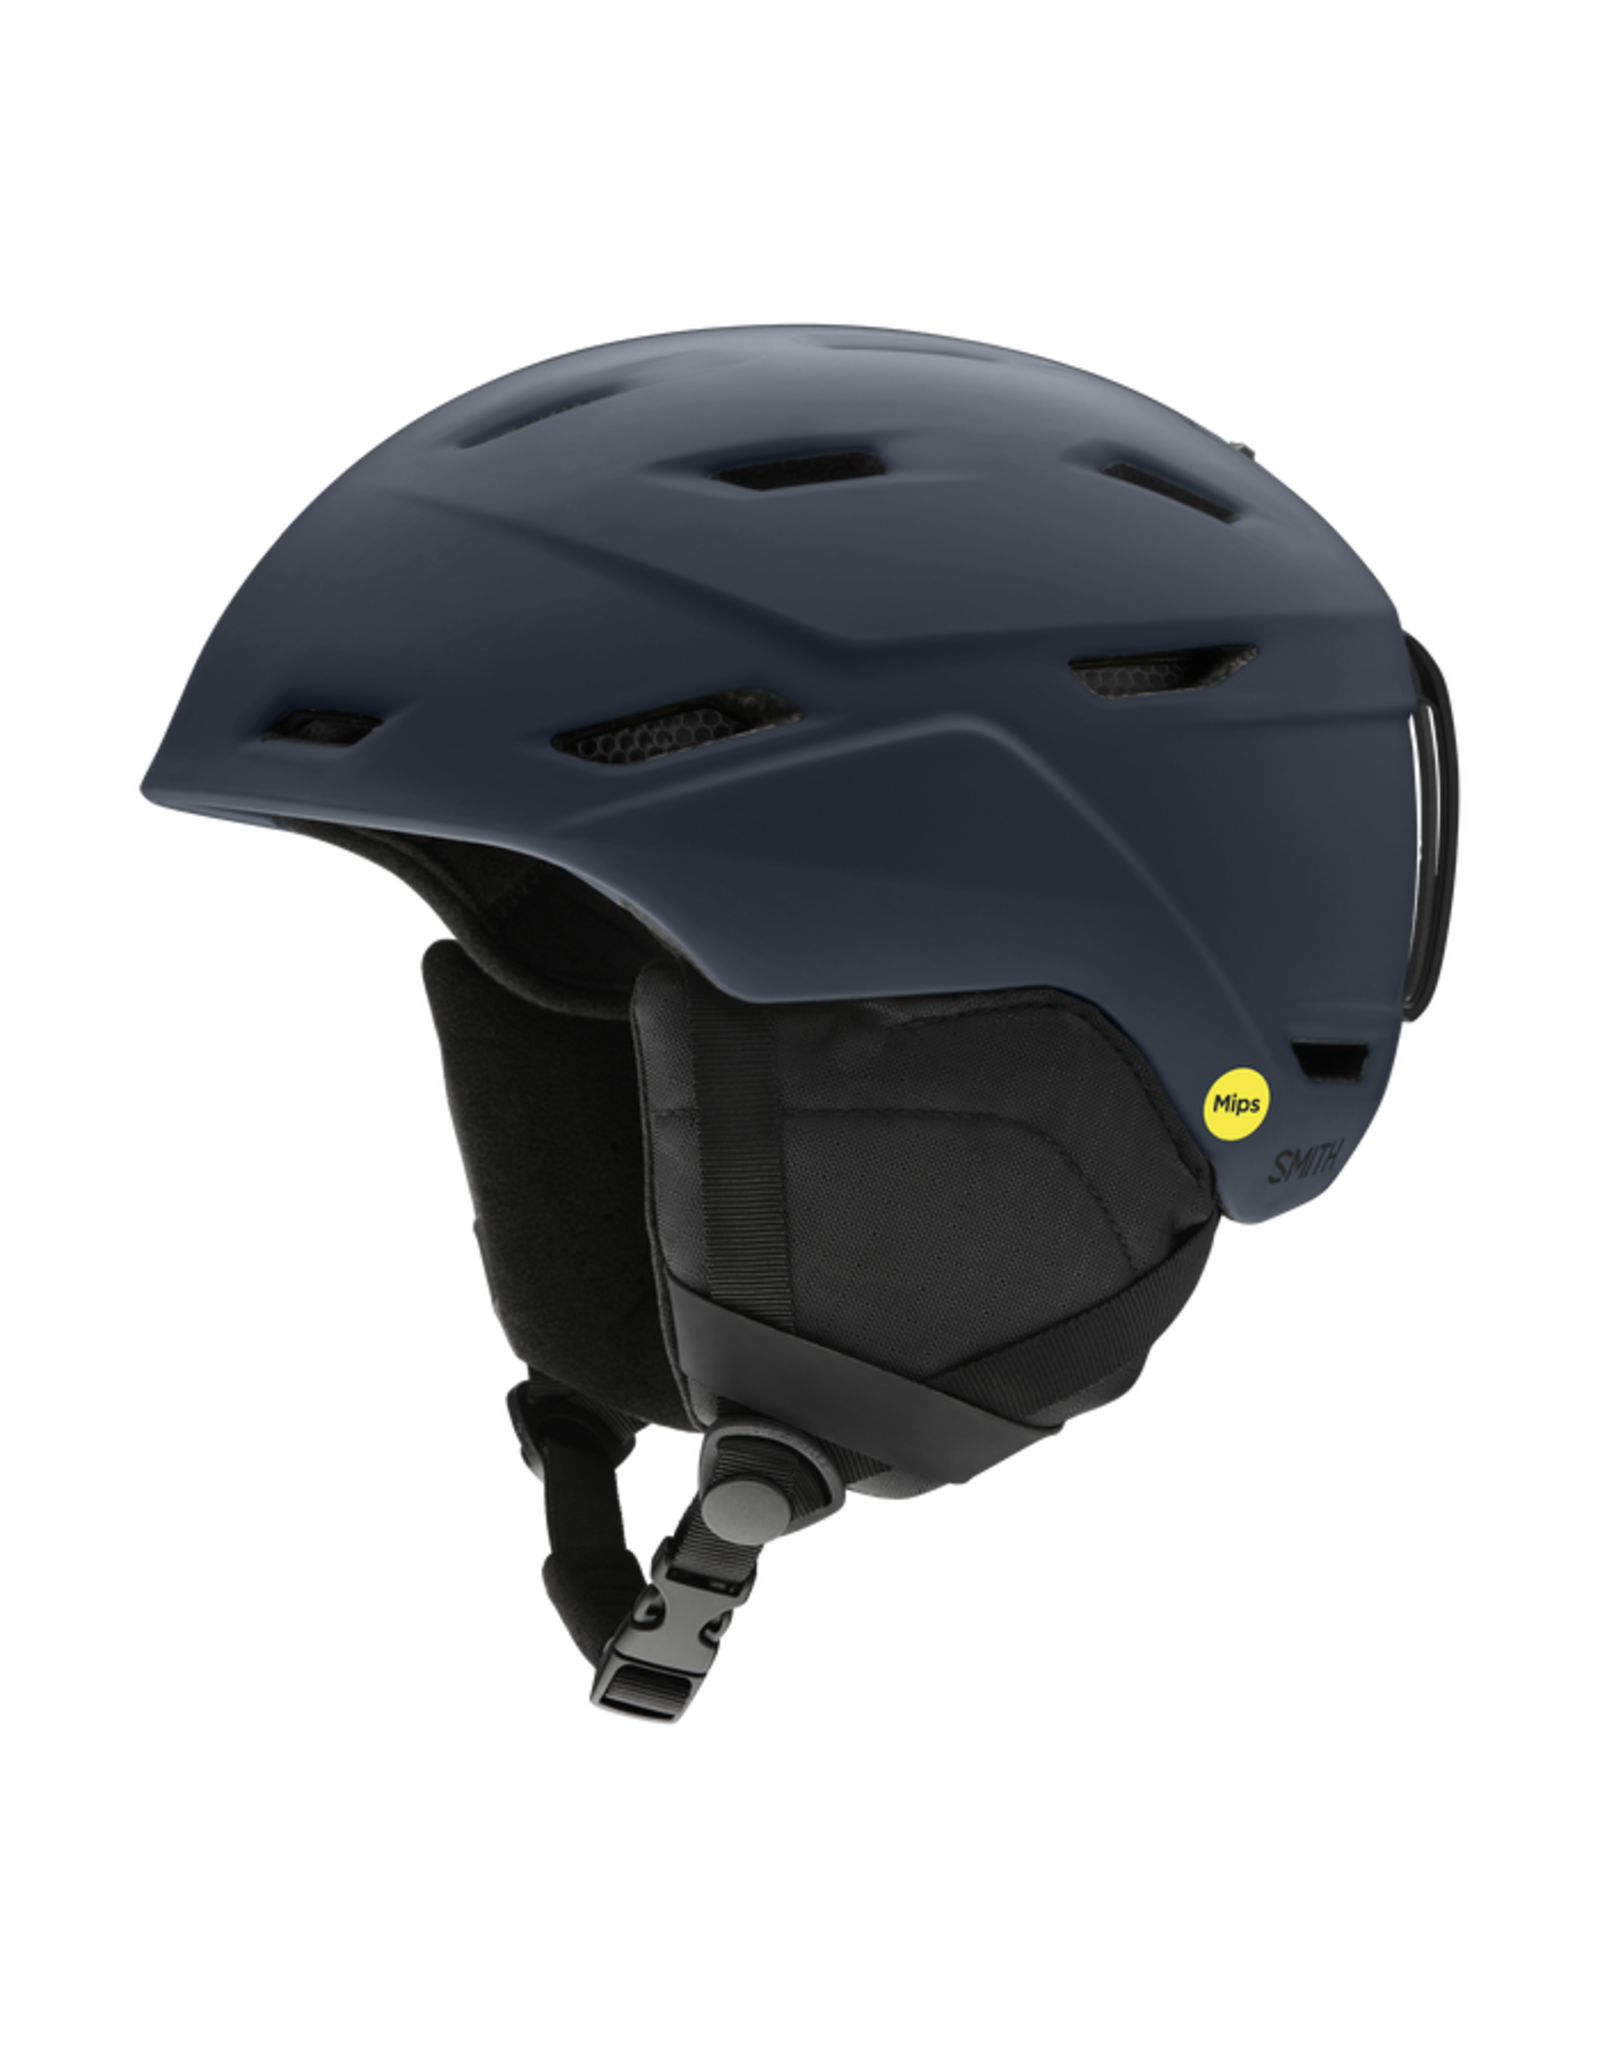 smith optics Smith Mission mips helmet - Matte French Navy - Large 59-63cm